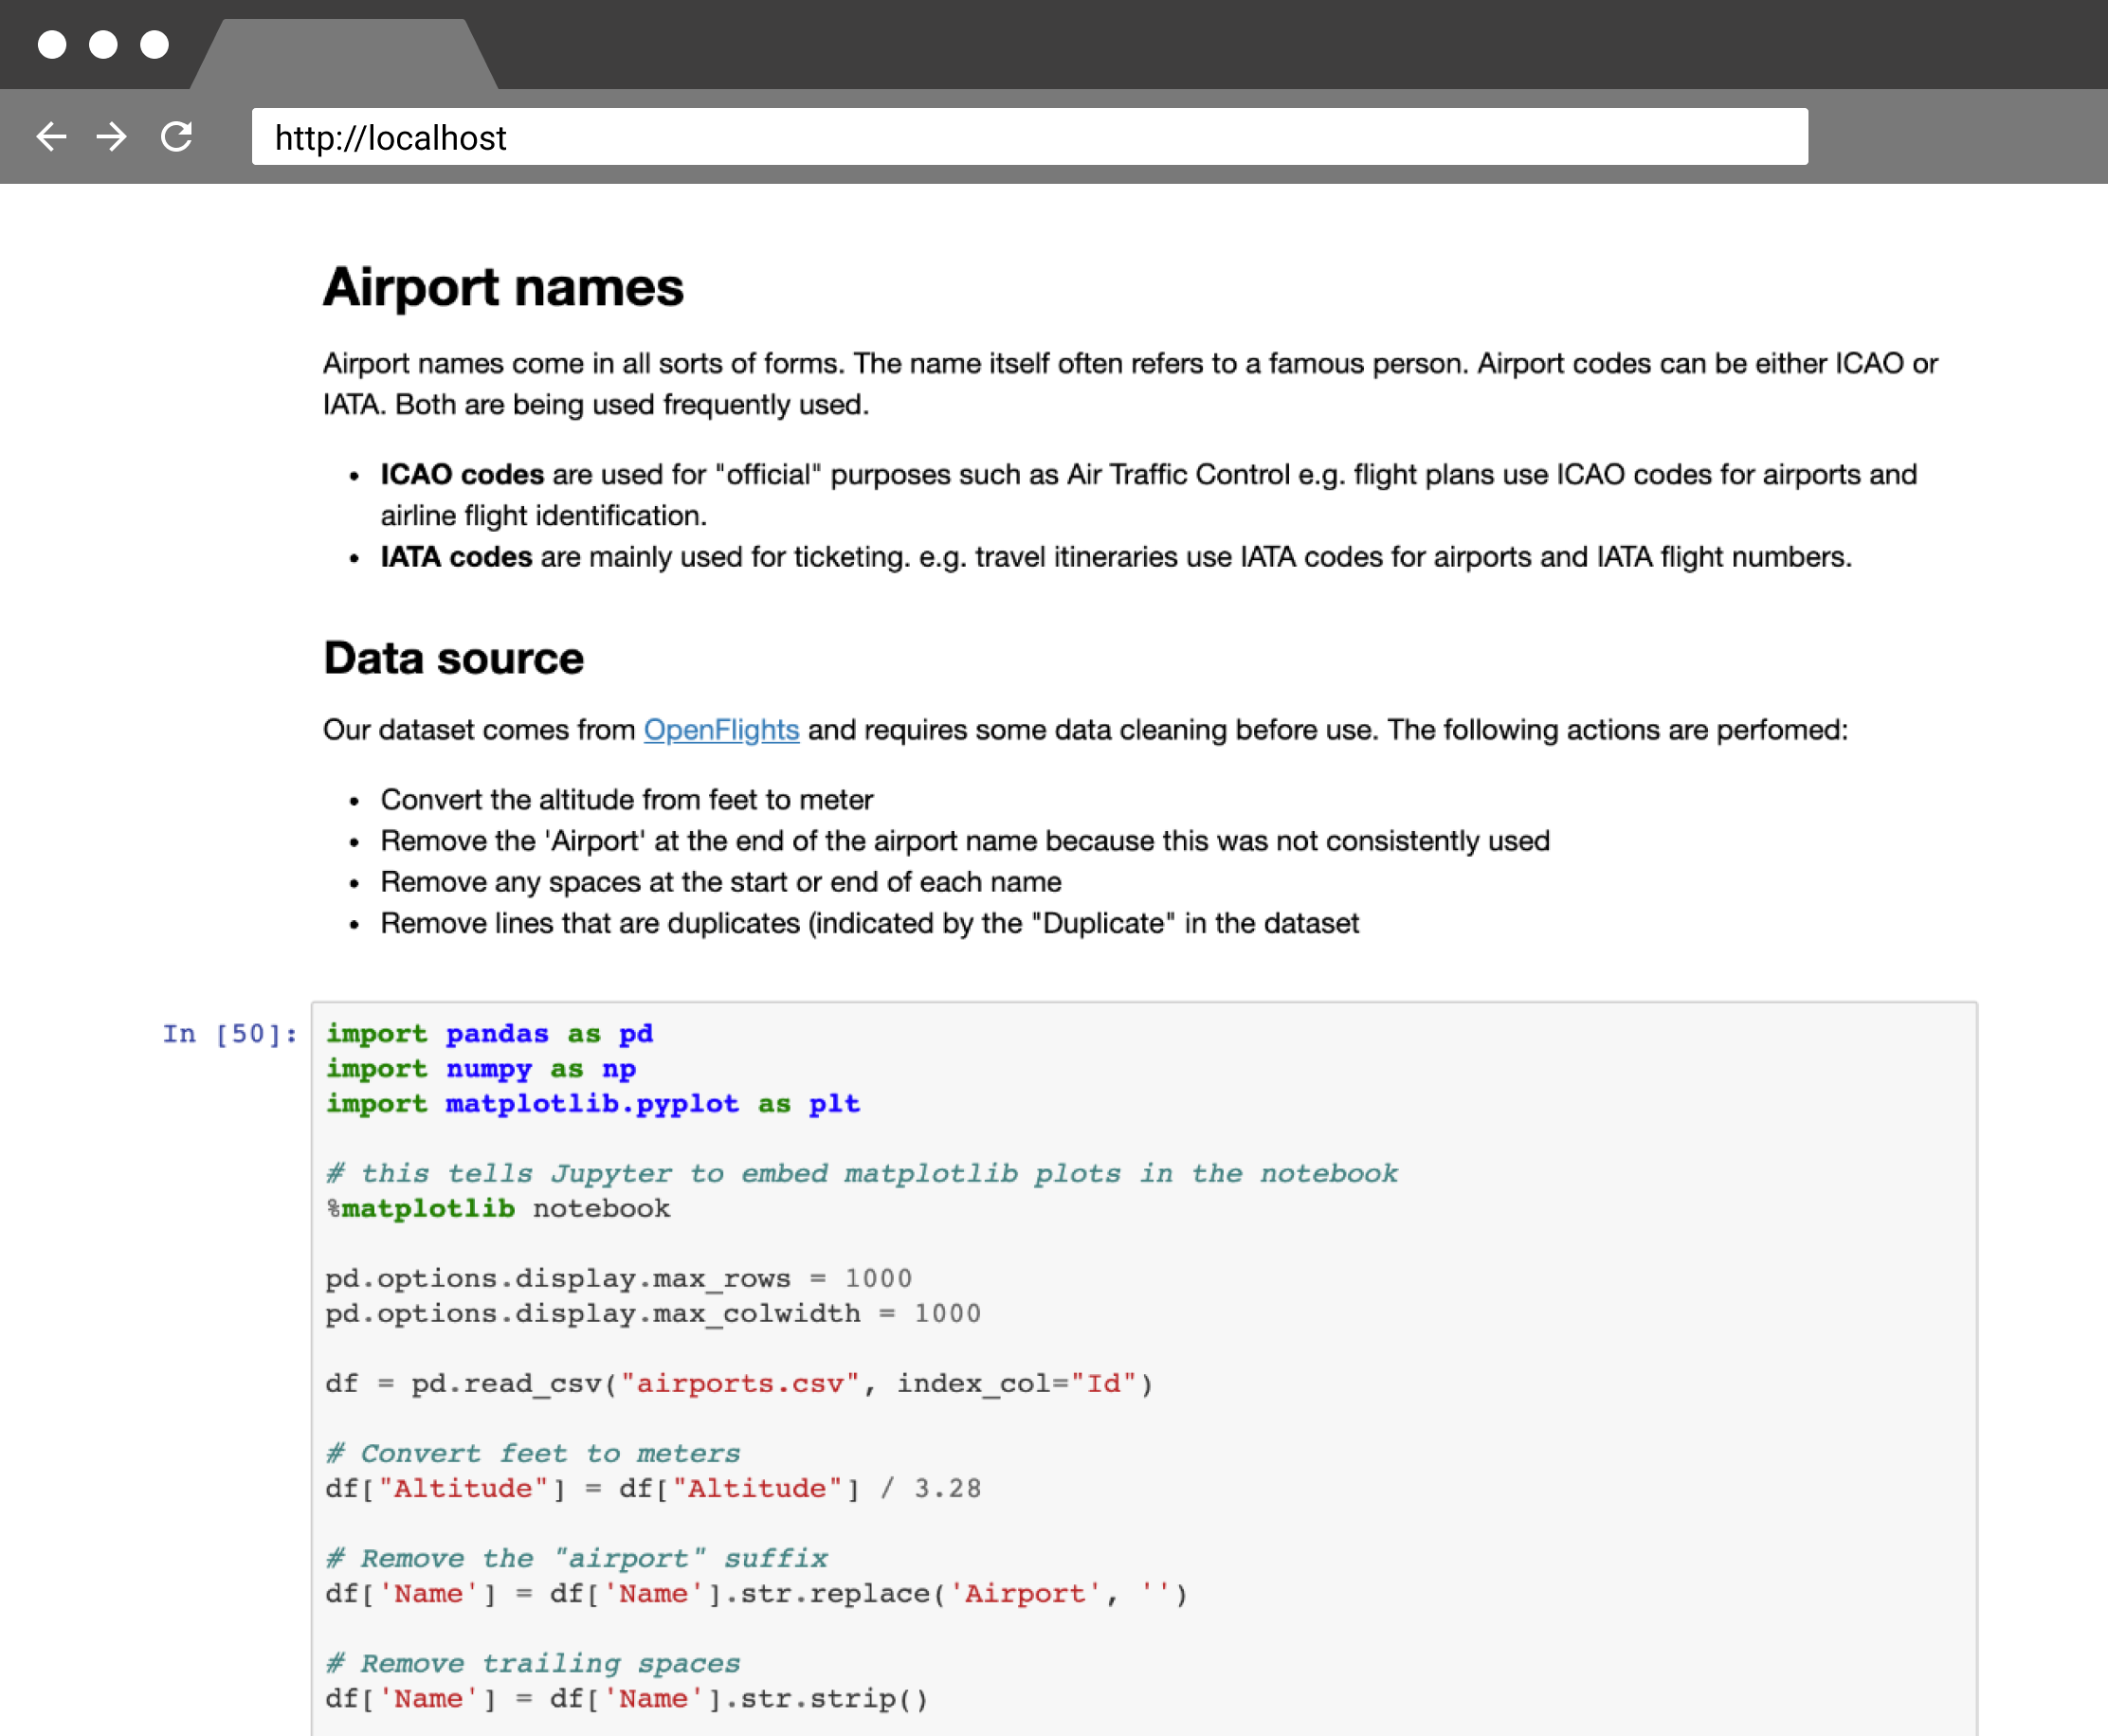 An example of a Jupyter Notebook for airport data, combining code and text